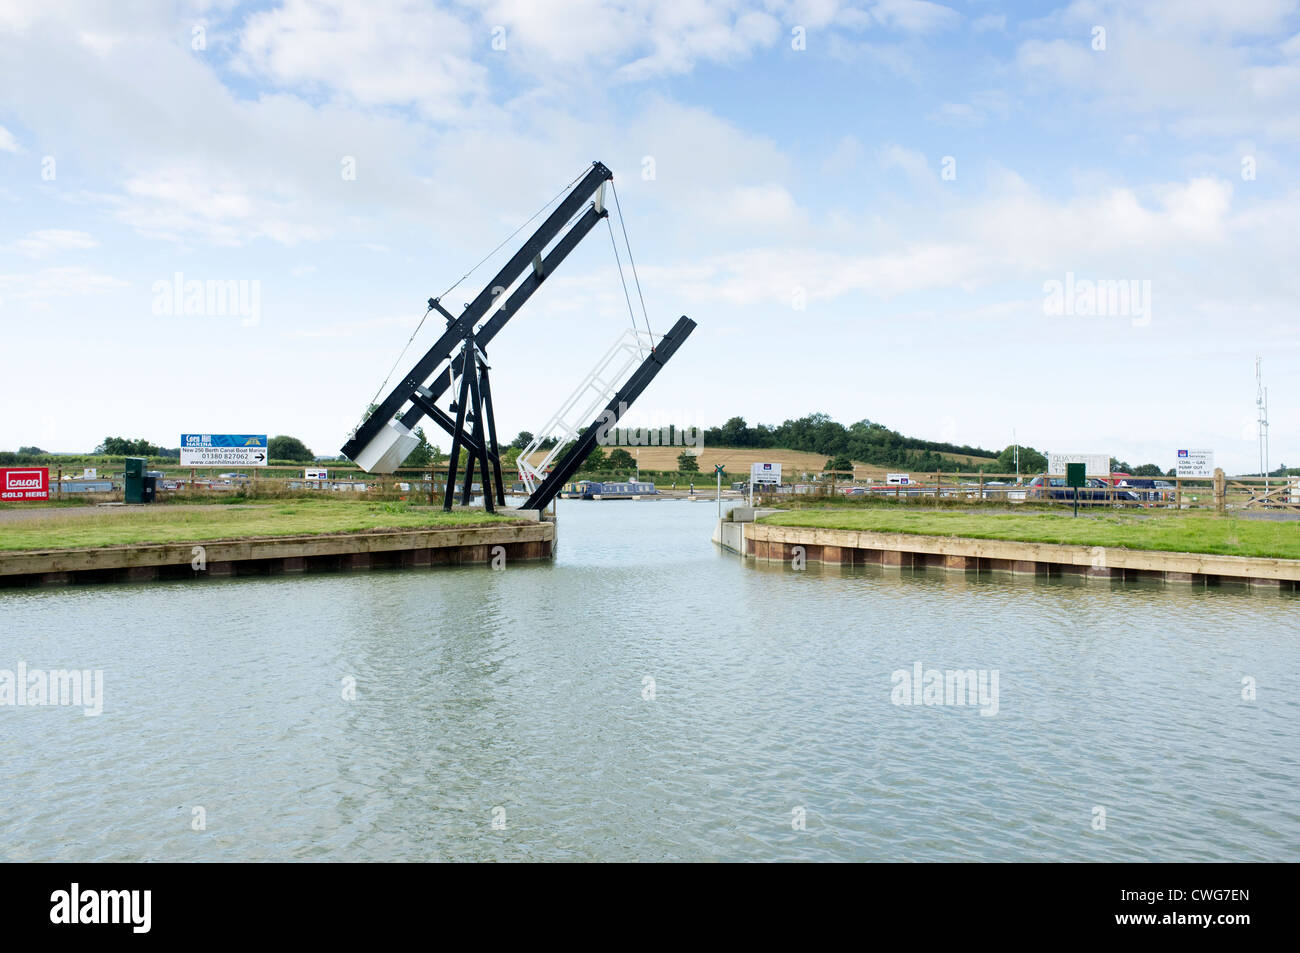 Cantilever bridge at the entrance to Caen Hill Marina on the Kennet and Avon Canal Wiltshire UK - Stock Image